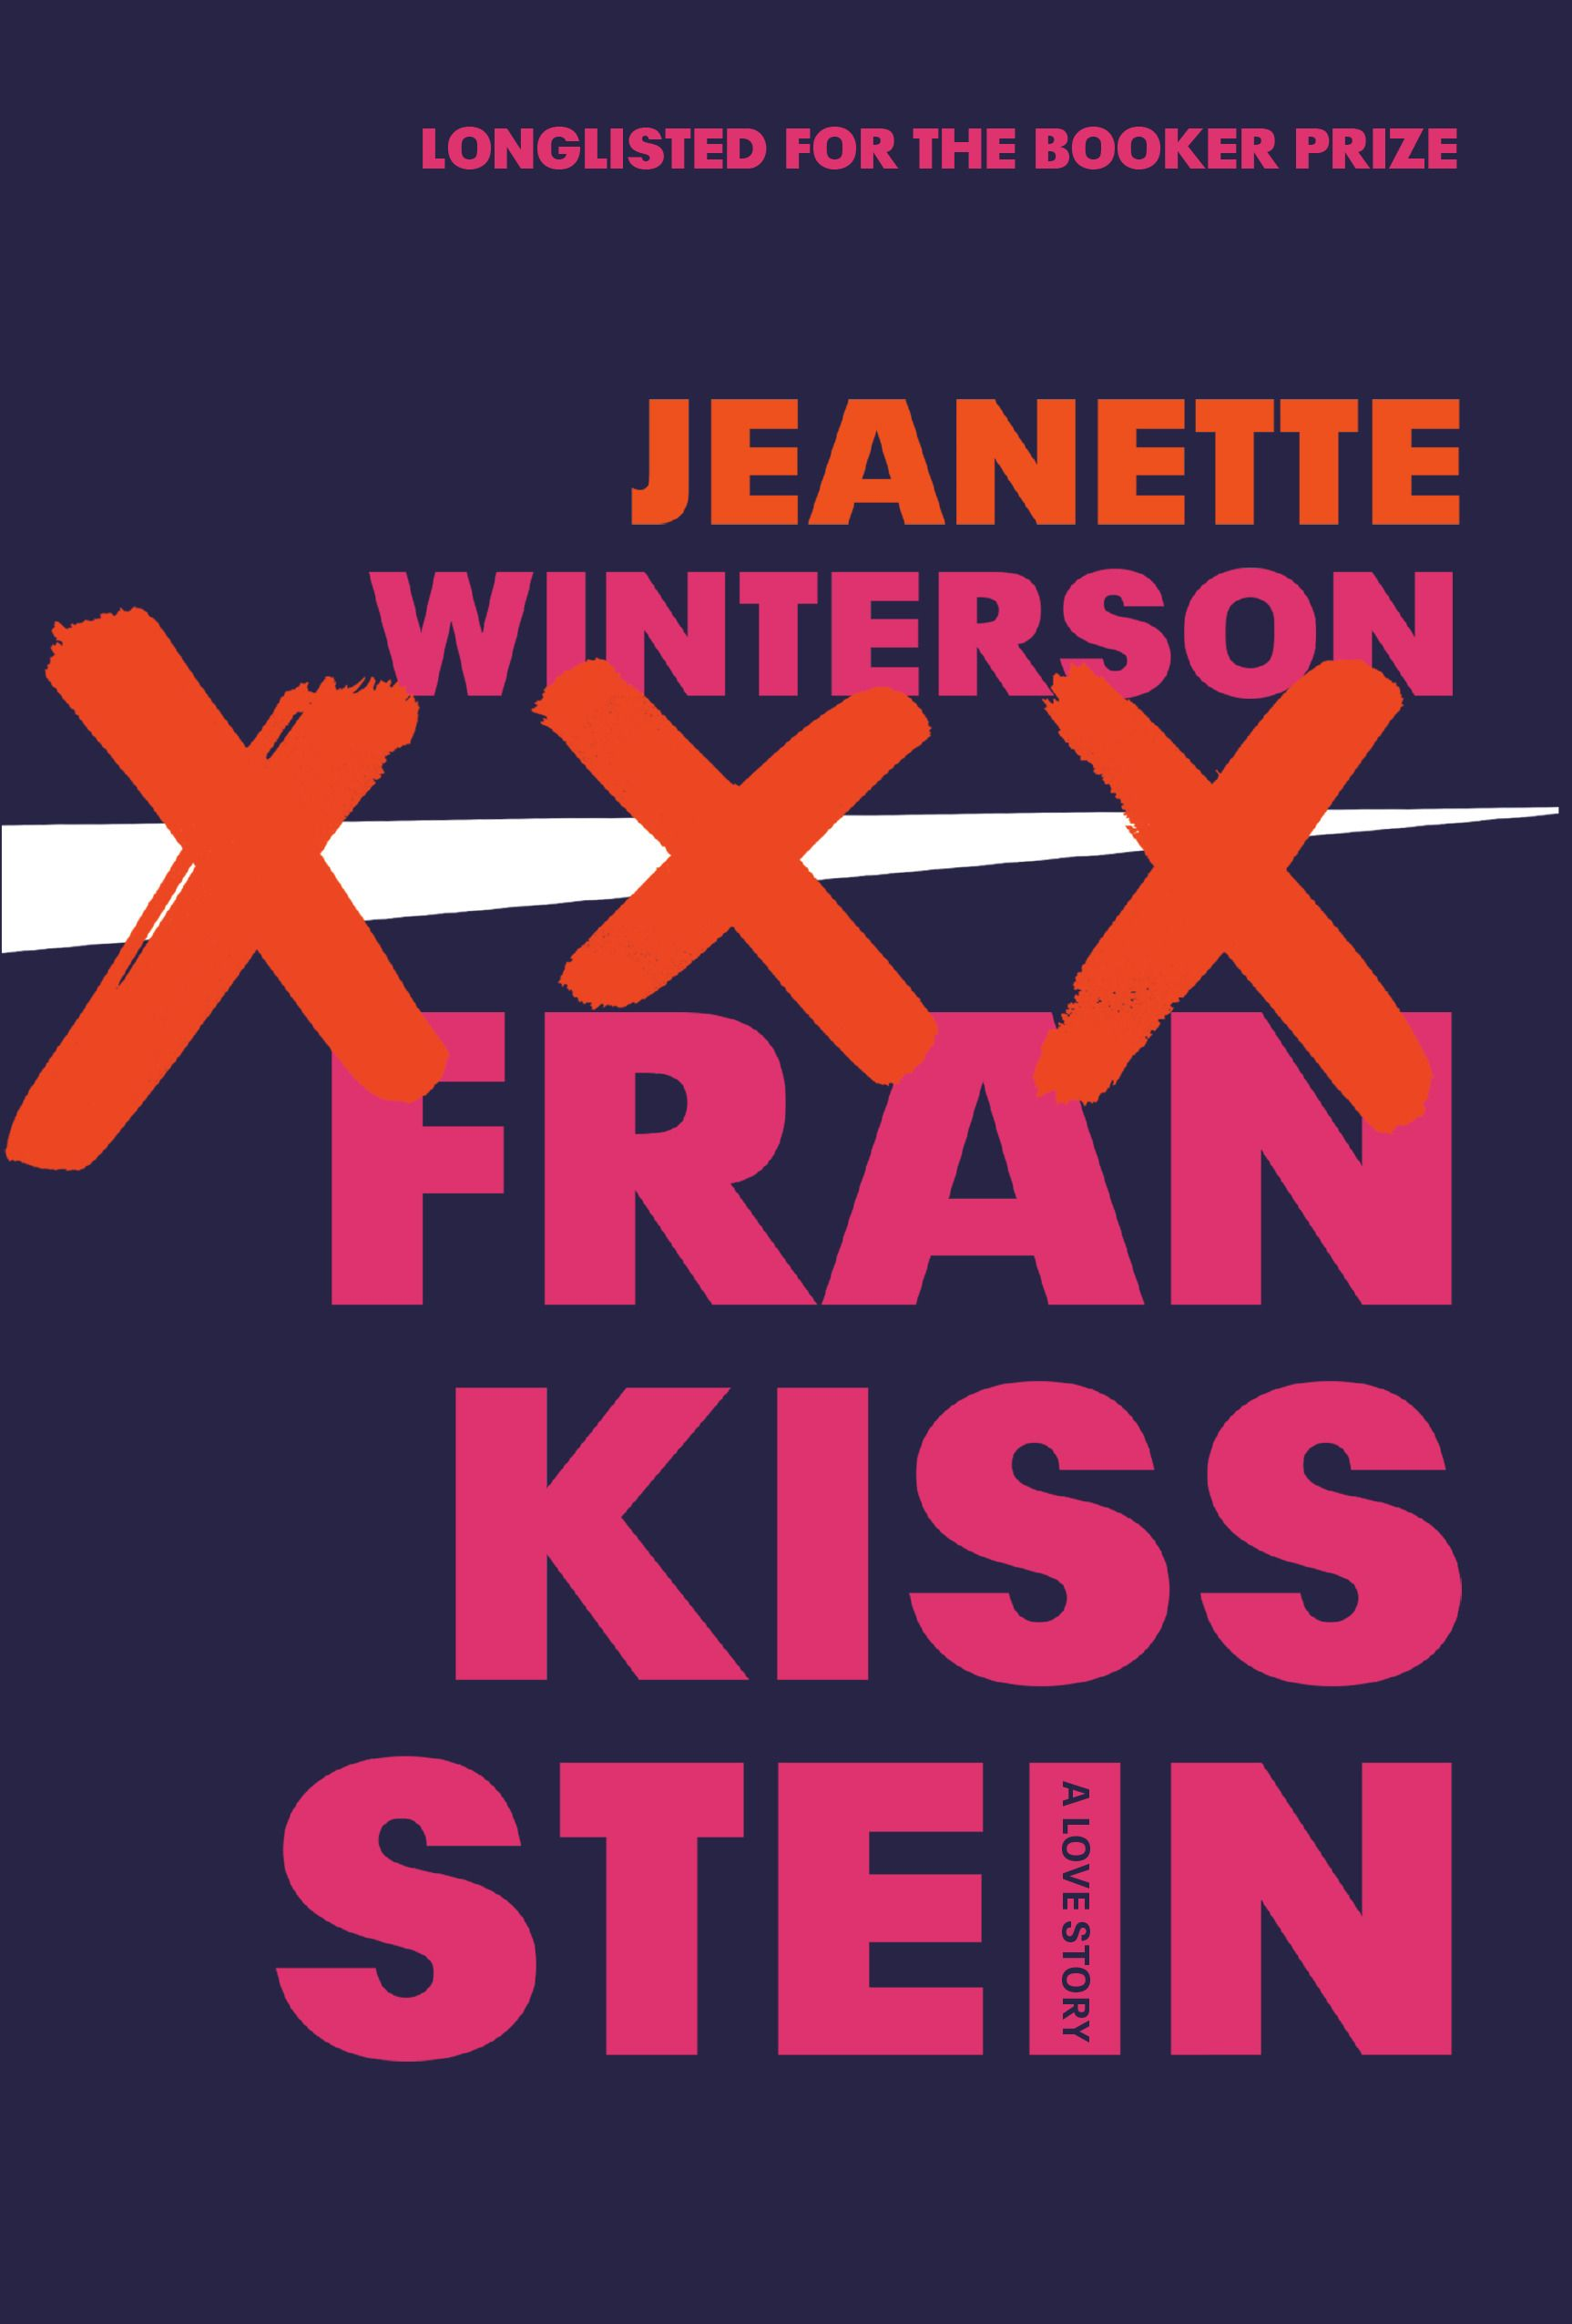 Frankissstein - I enjoyed reading sci-fi but for some reason rarely pick up the genre. This one's set in 1816 when 19-year-old Mary Shelley writes a story about creating a non-biological life-form. With Ry, in Brexit Britian, a young transgender doctor who's following in love against better judgement. Lonely Ron, just divorced and living with his mom again. And across the Atlantic, in Phoenix, Arizona, a cryogenics facility is housing dozens of medically and legally dead bodies waiting to return to life.